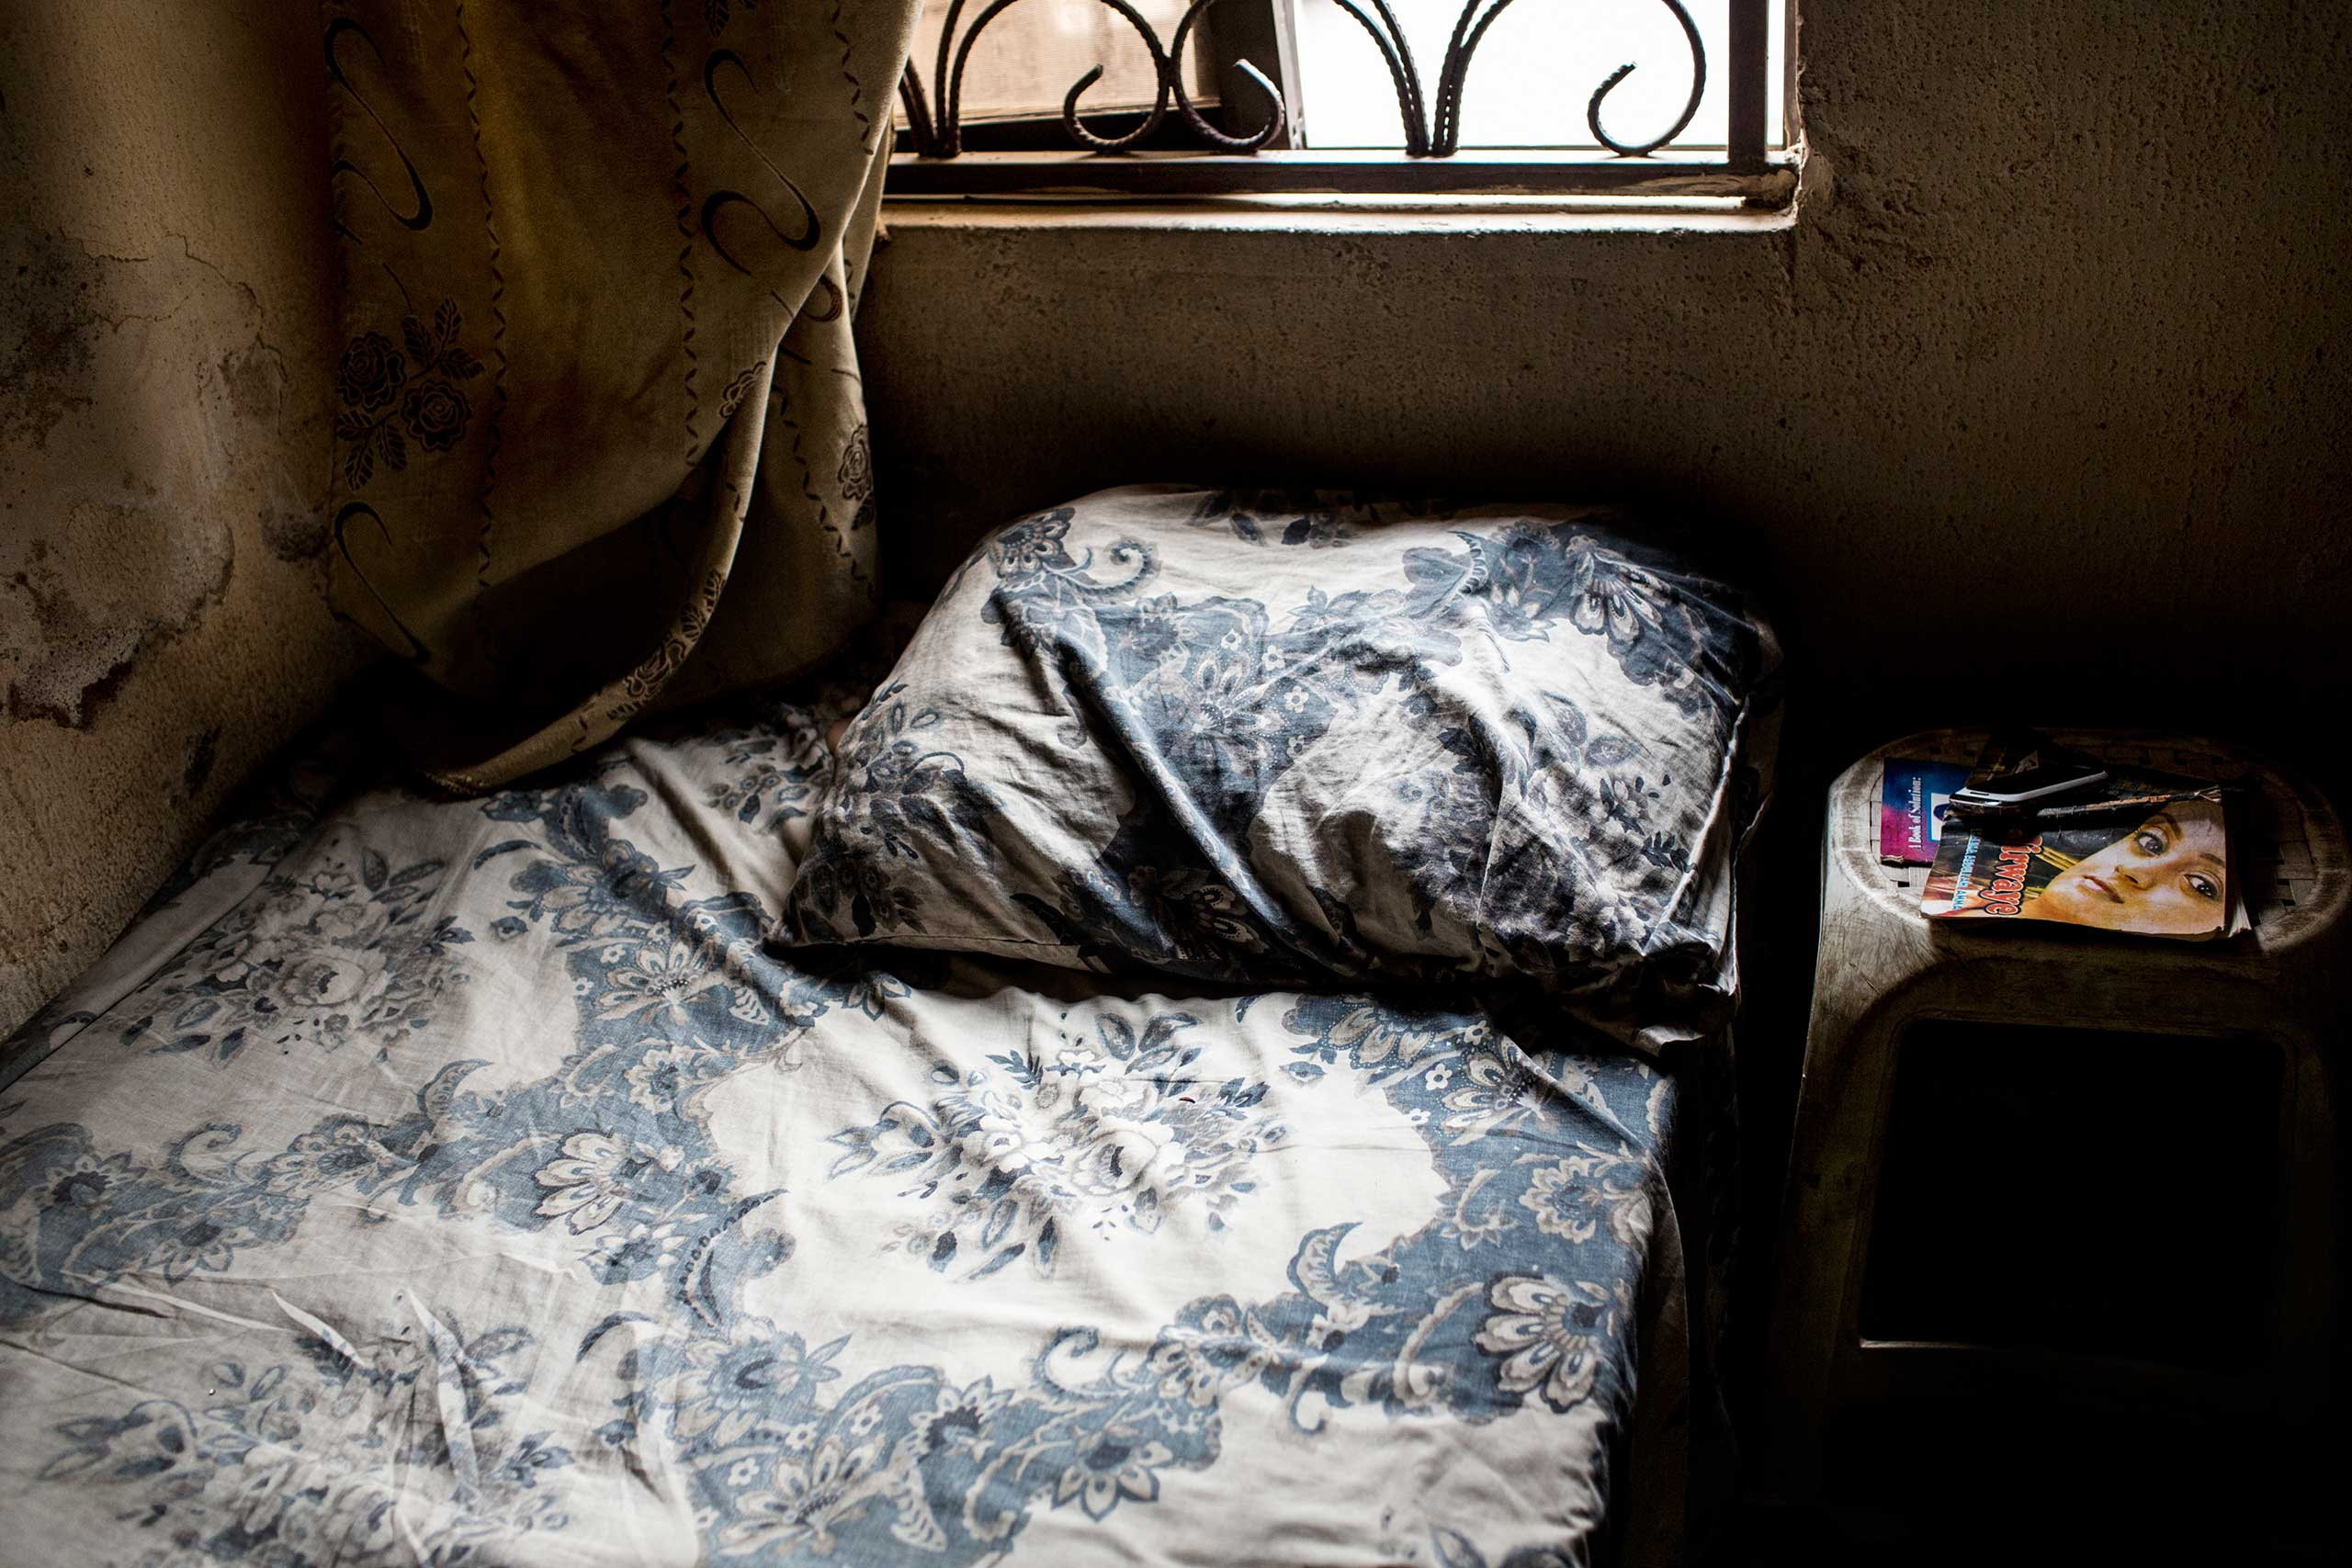 A novel sits on the bedside table of a young girl in Kano, Northern Nigeria, March 1, 2014.